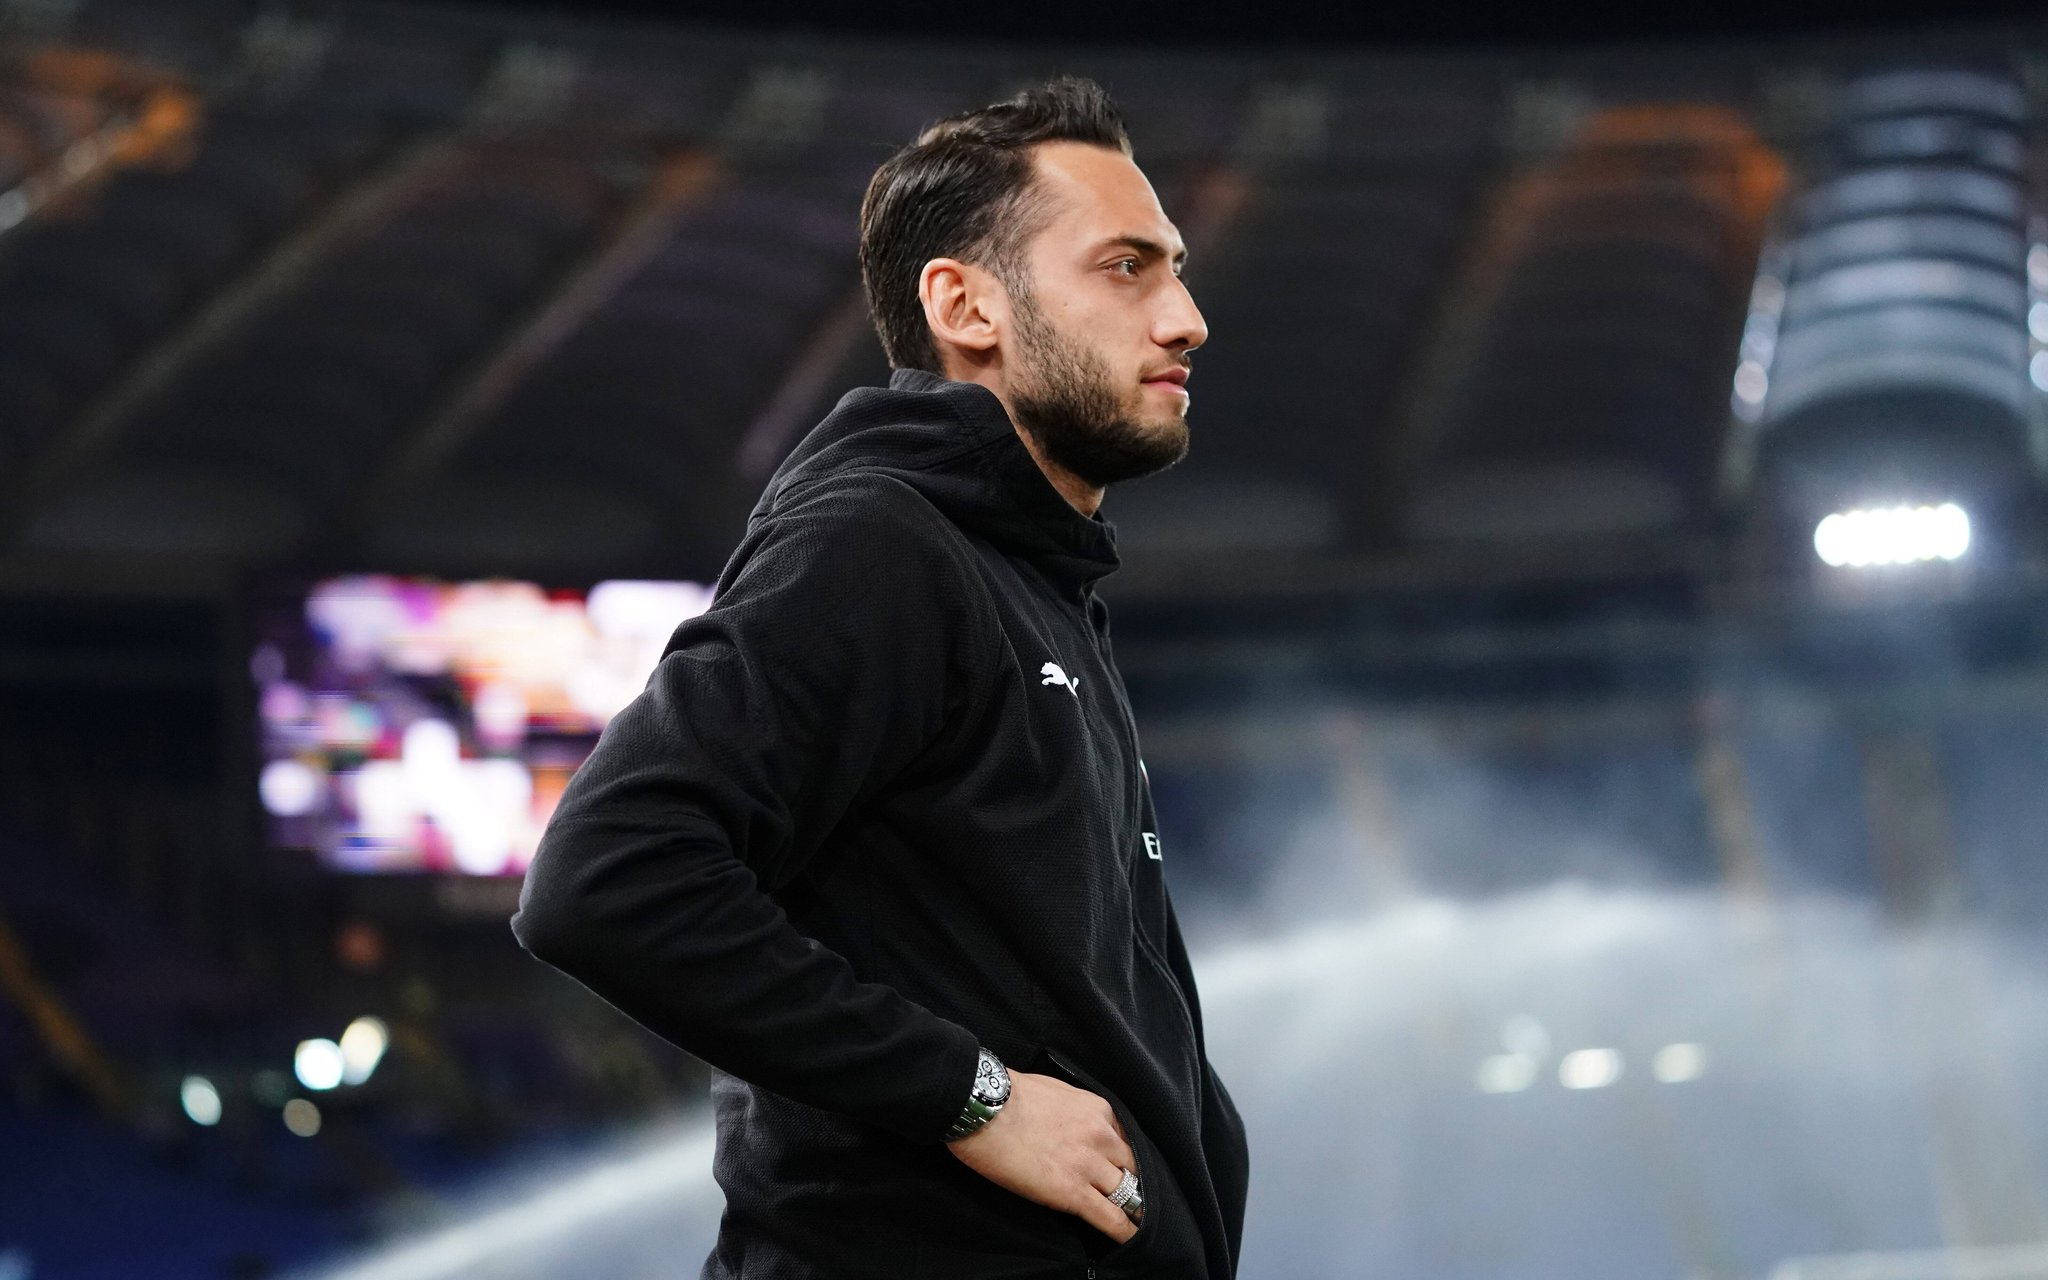 Yet another central attacking midfielder? There's 90% chance Manchester United signs Calhanoglu